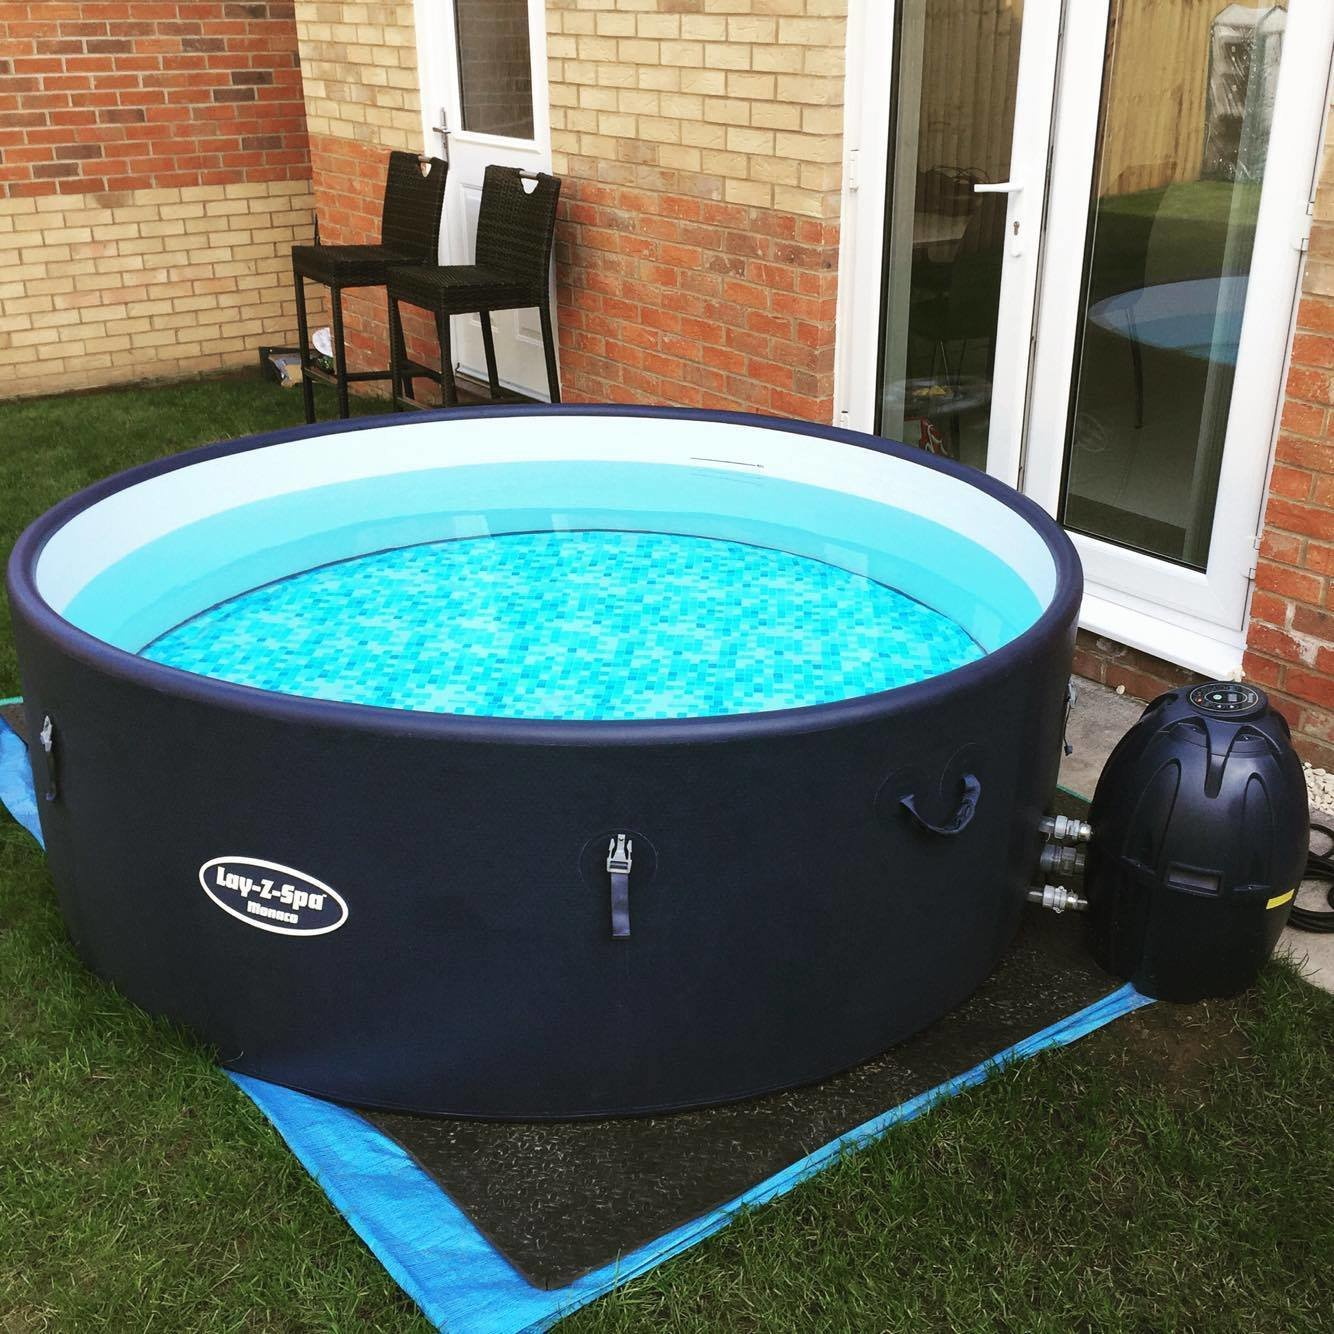 Lay-Z Spa Monaco Inflatable Hot Tub (7 Day Hire) (8 people)